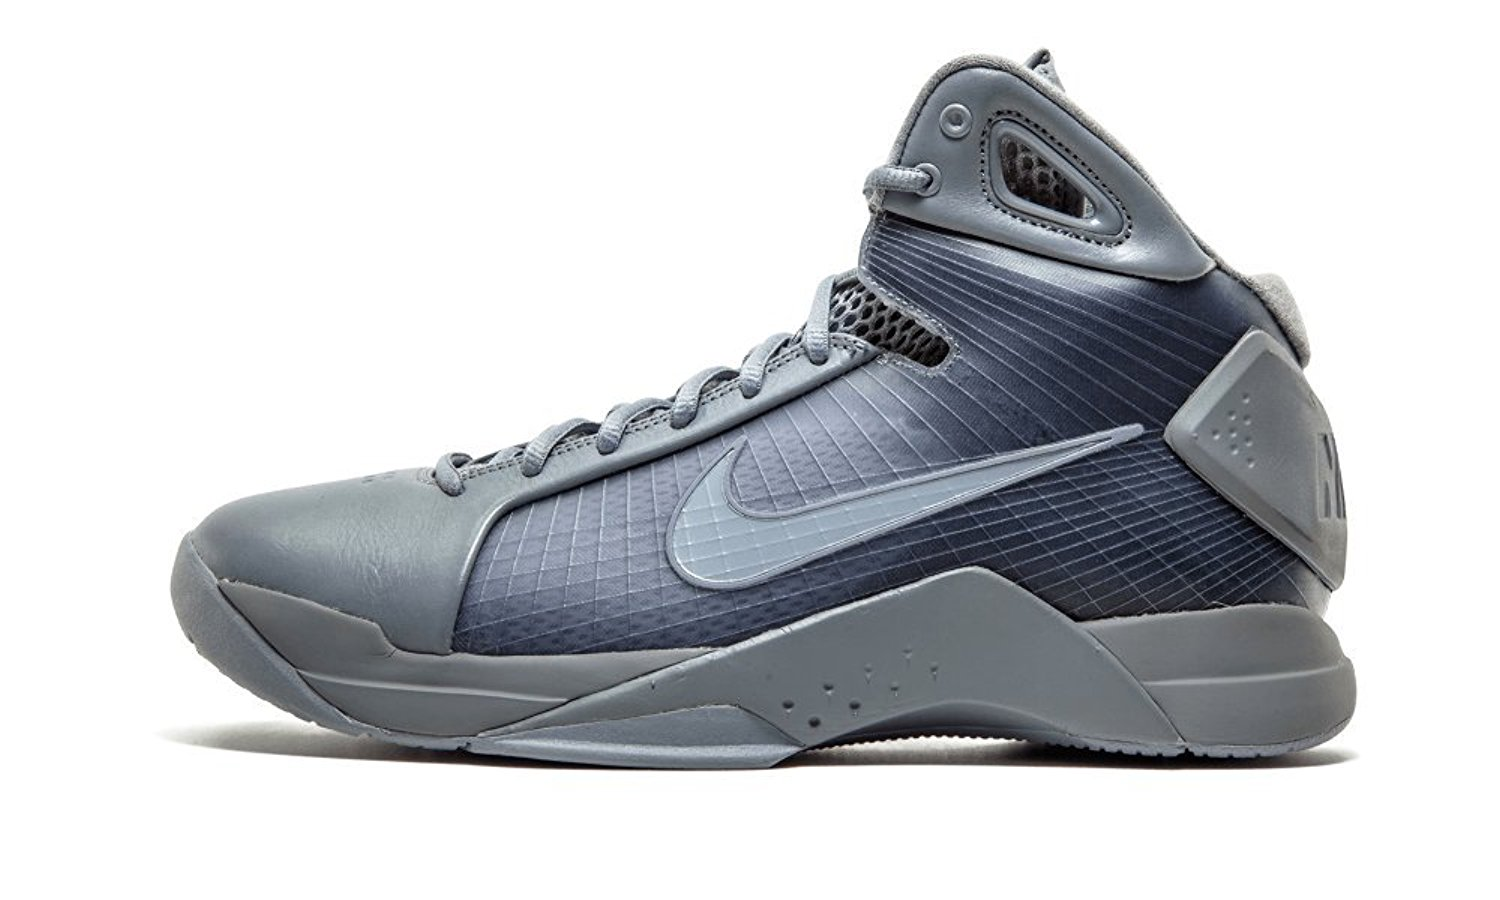 low priced 9632d 833ec ... sale get quotations nike hyperdunk 08 ftb kobe fade to black pack  stealth stealth 44515 451c5